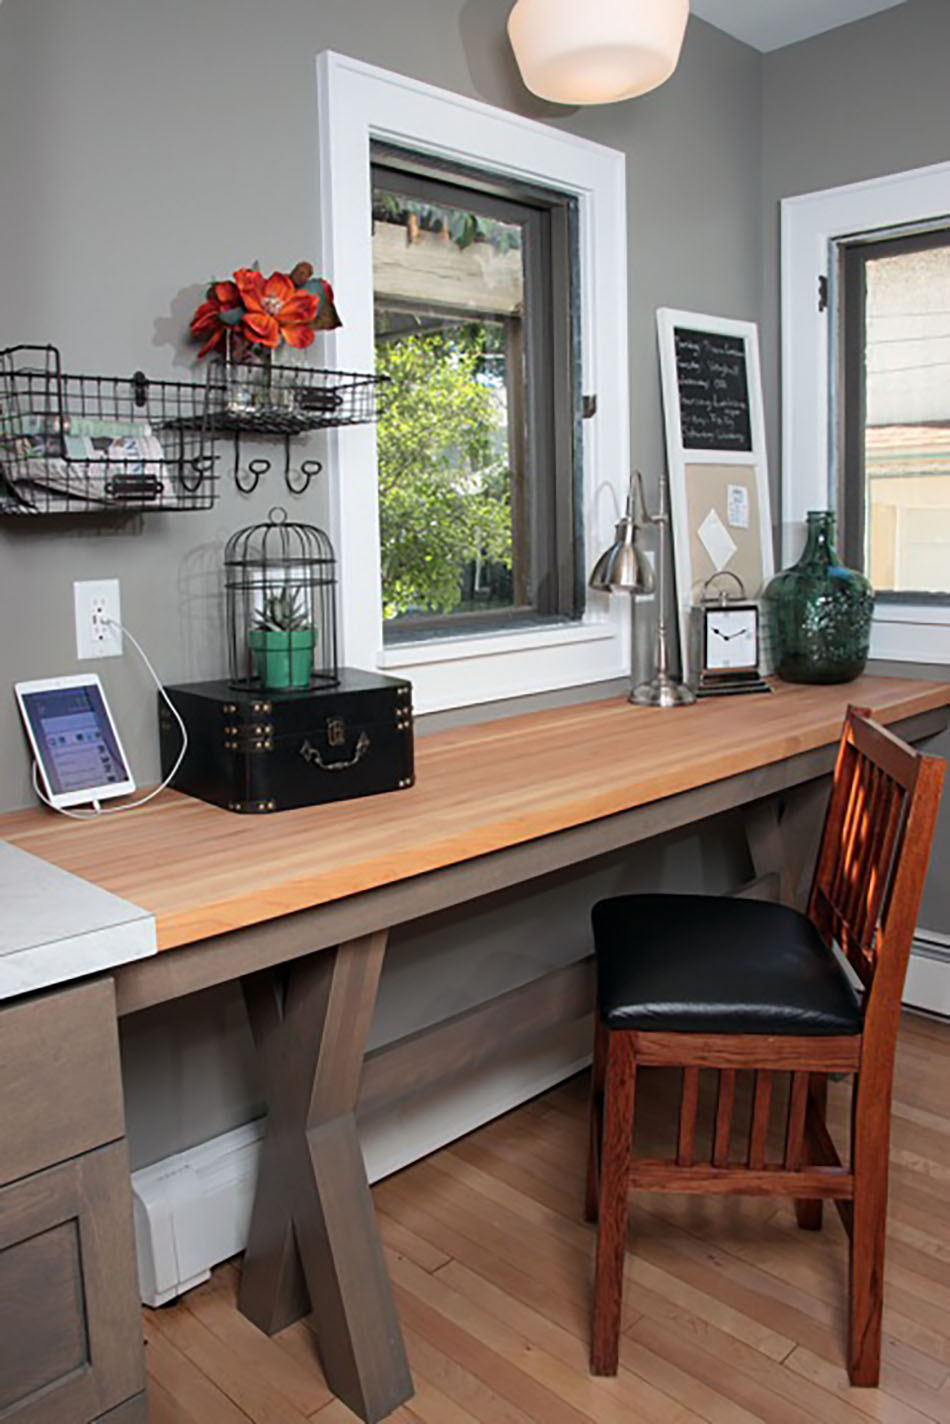 butcher-block-wood-desk-space-saver-white-framed-windows-story-hill-milwaukee